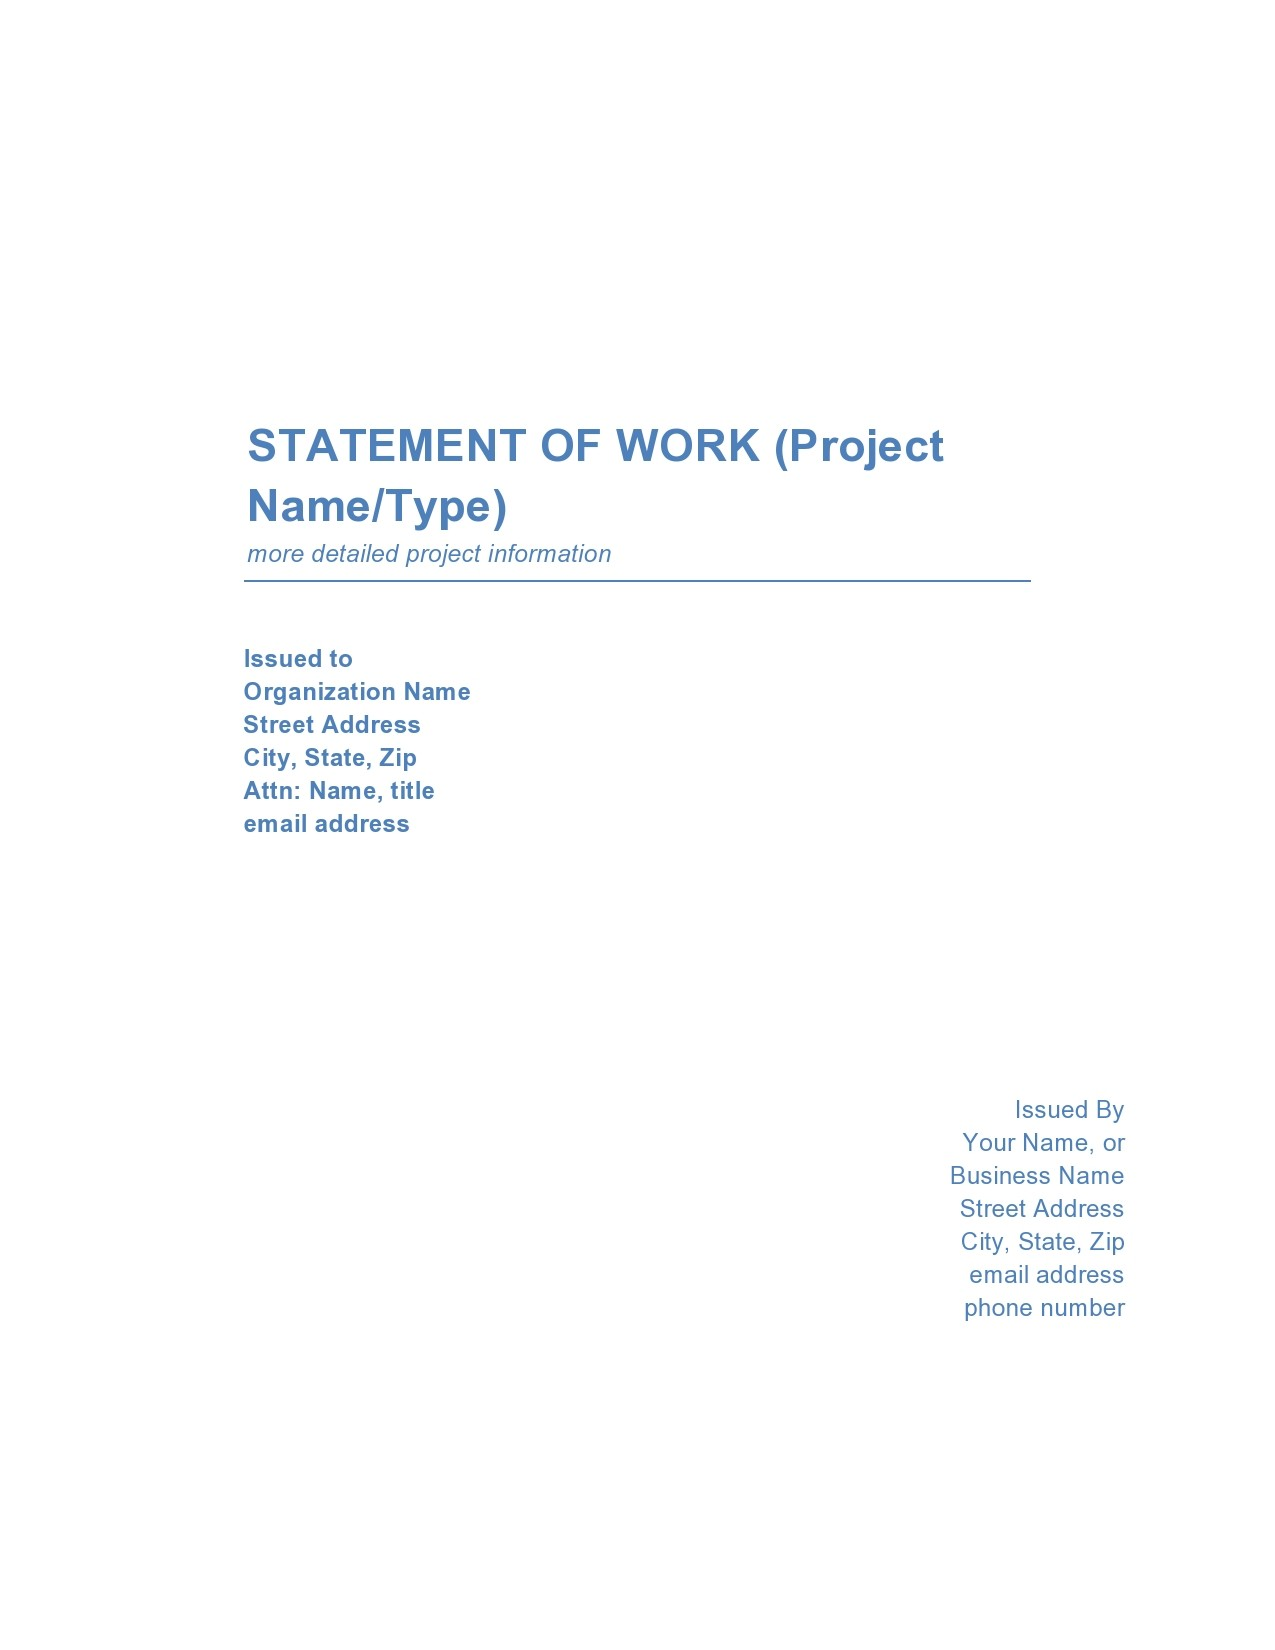 Free statement of work template 15